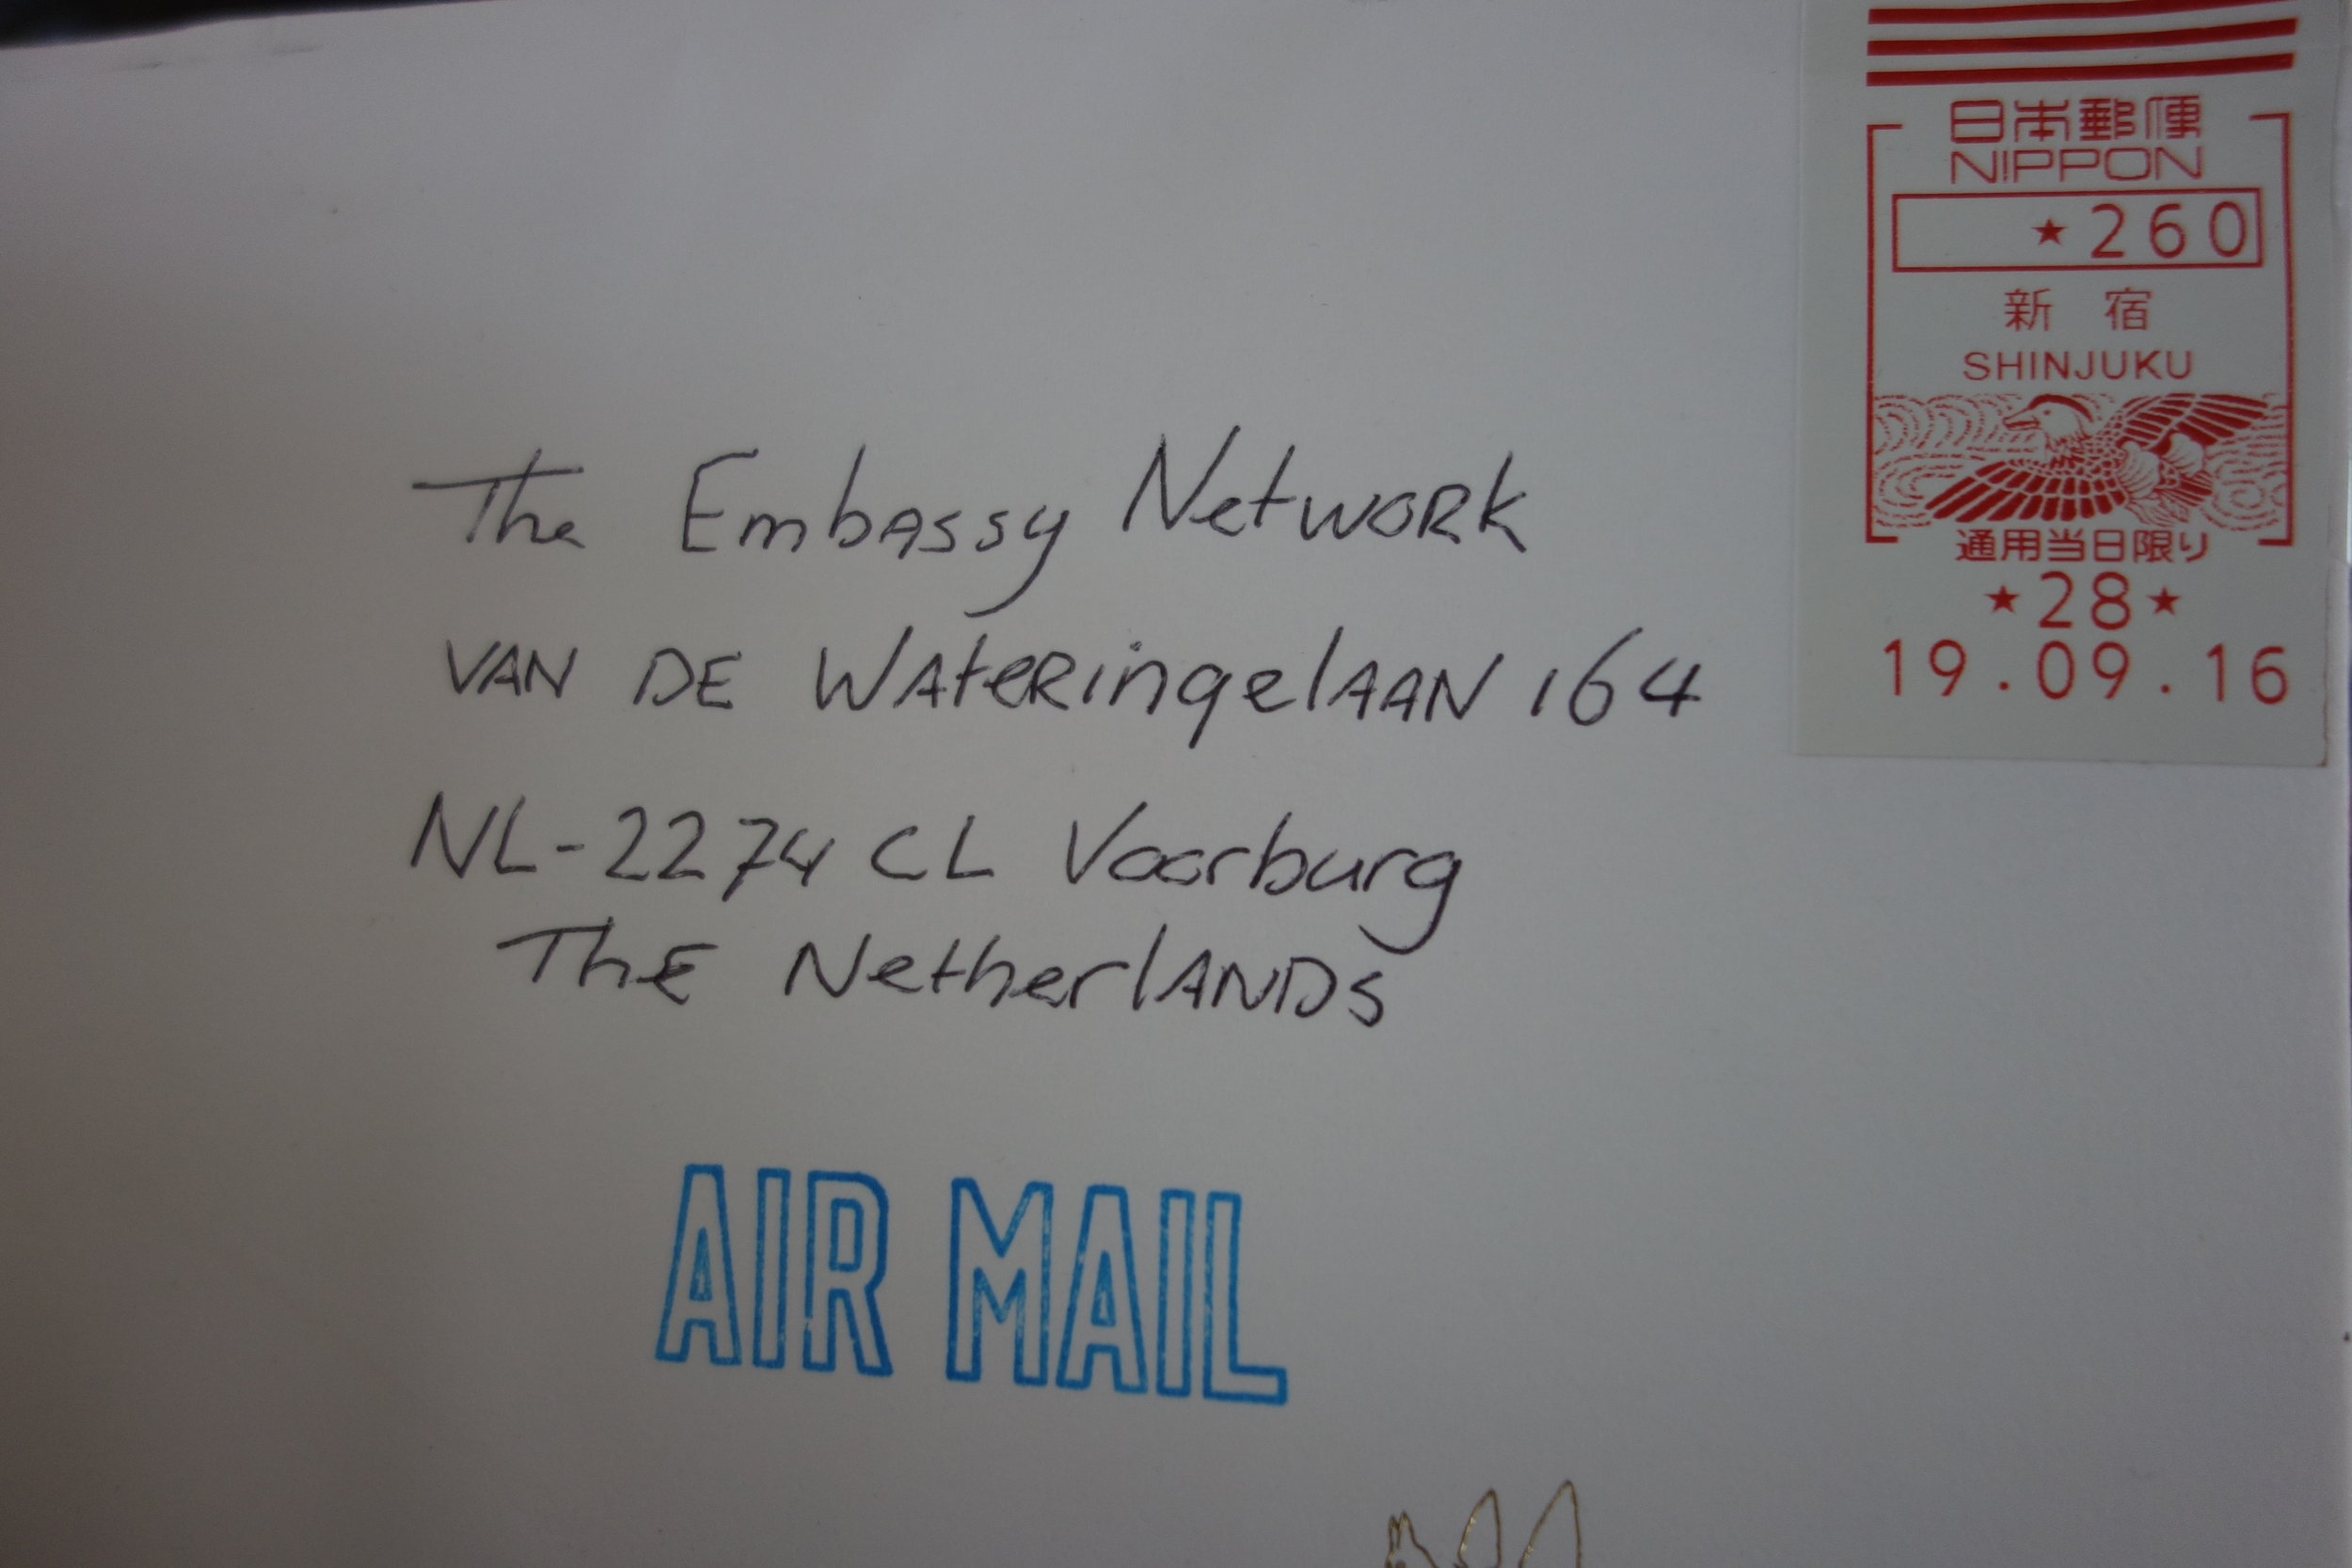 Yes we like mail. Send us an original card from your dream destination.